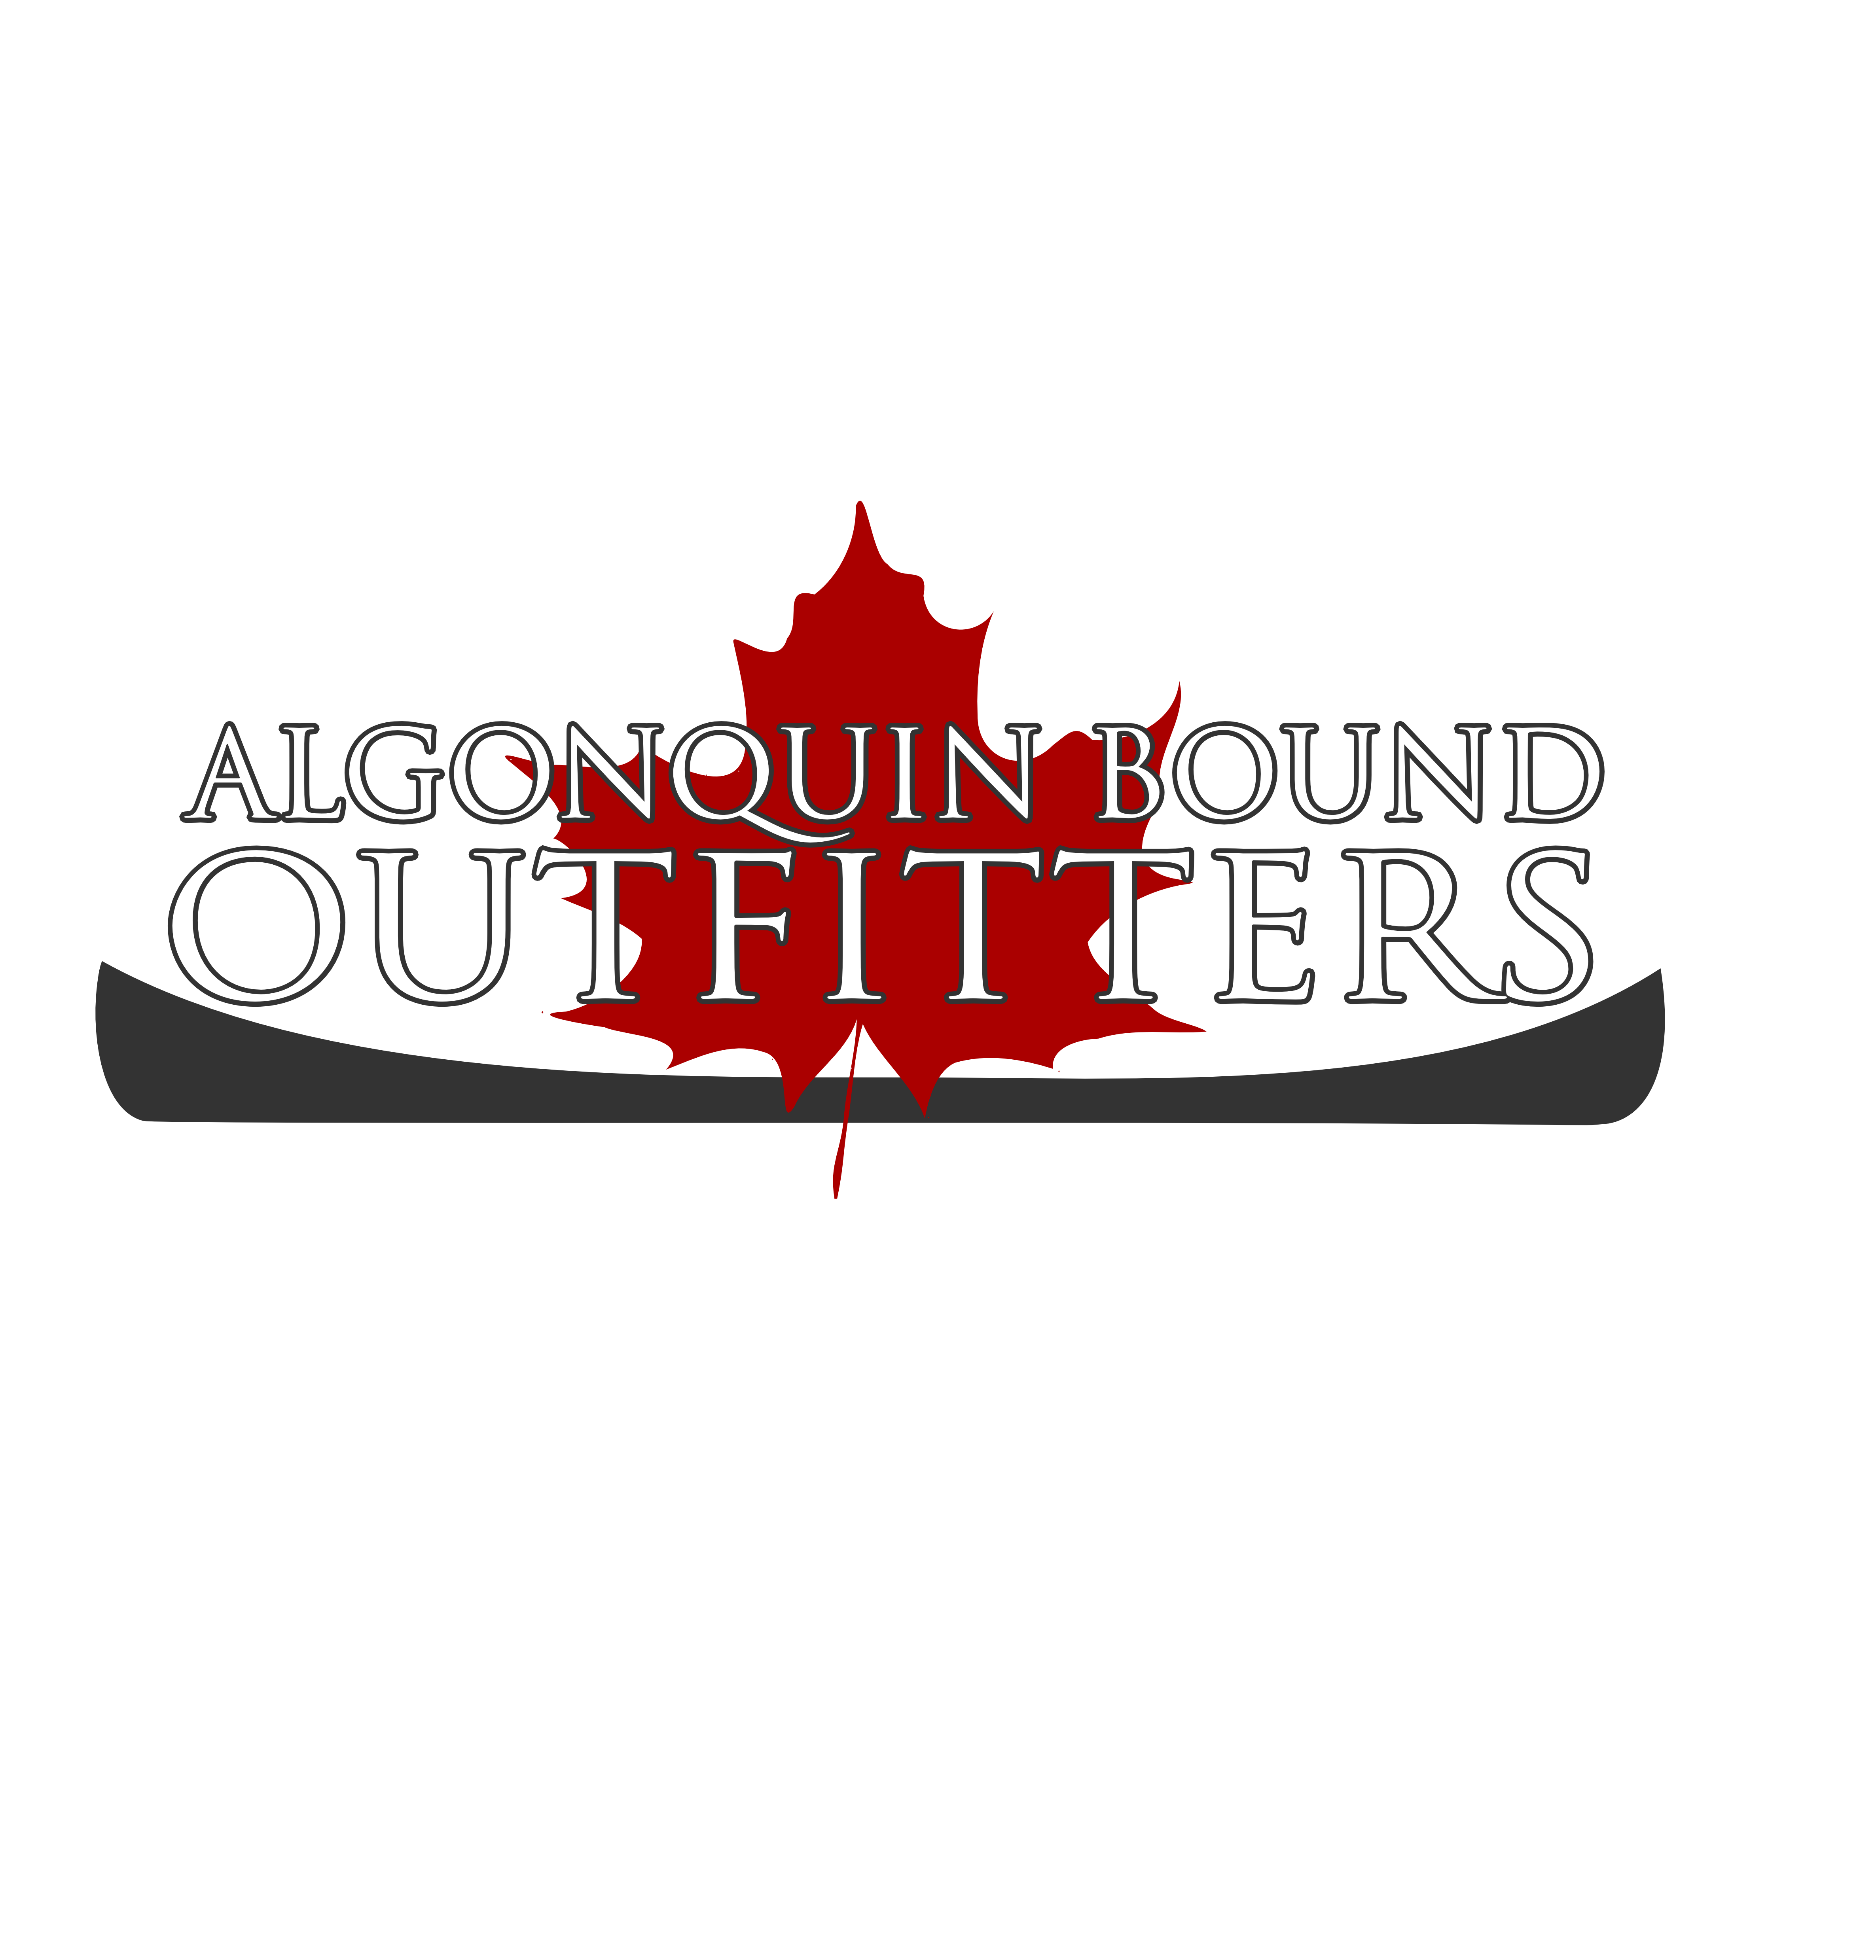 Logo Design by Andrew Bertram - Entry No. 22 in the Logo Design Contest Captivating Logo Design for Algonquin Bound Outfitters.